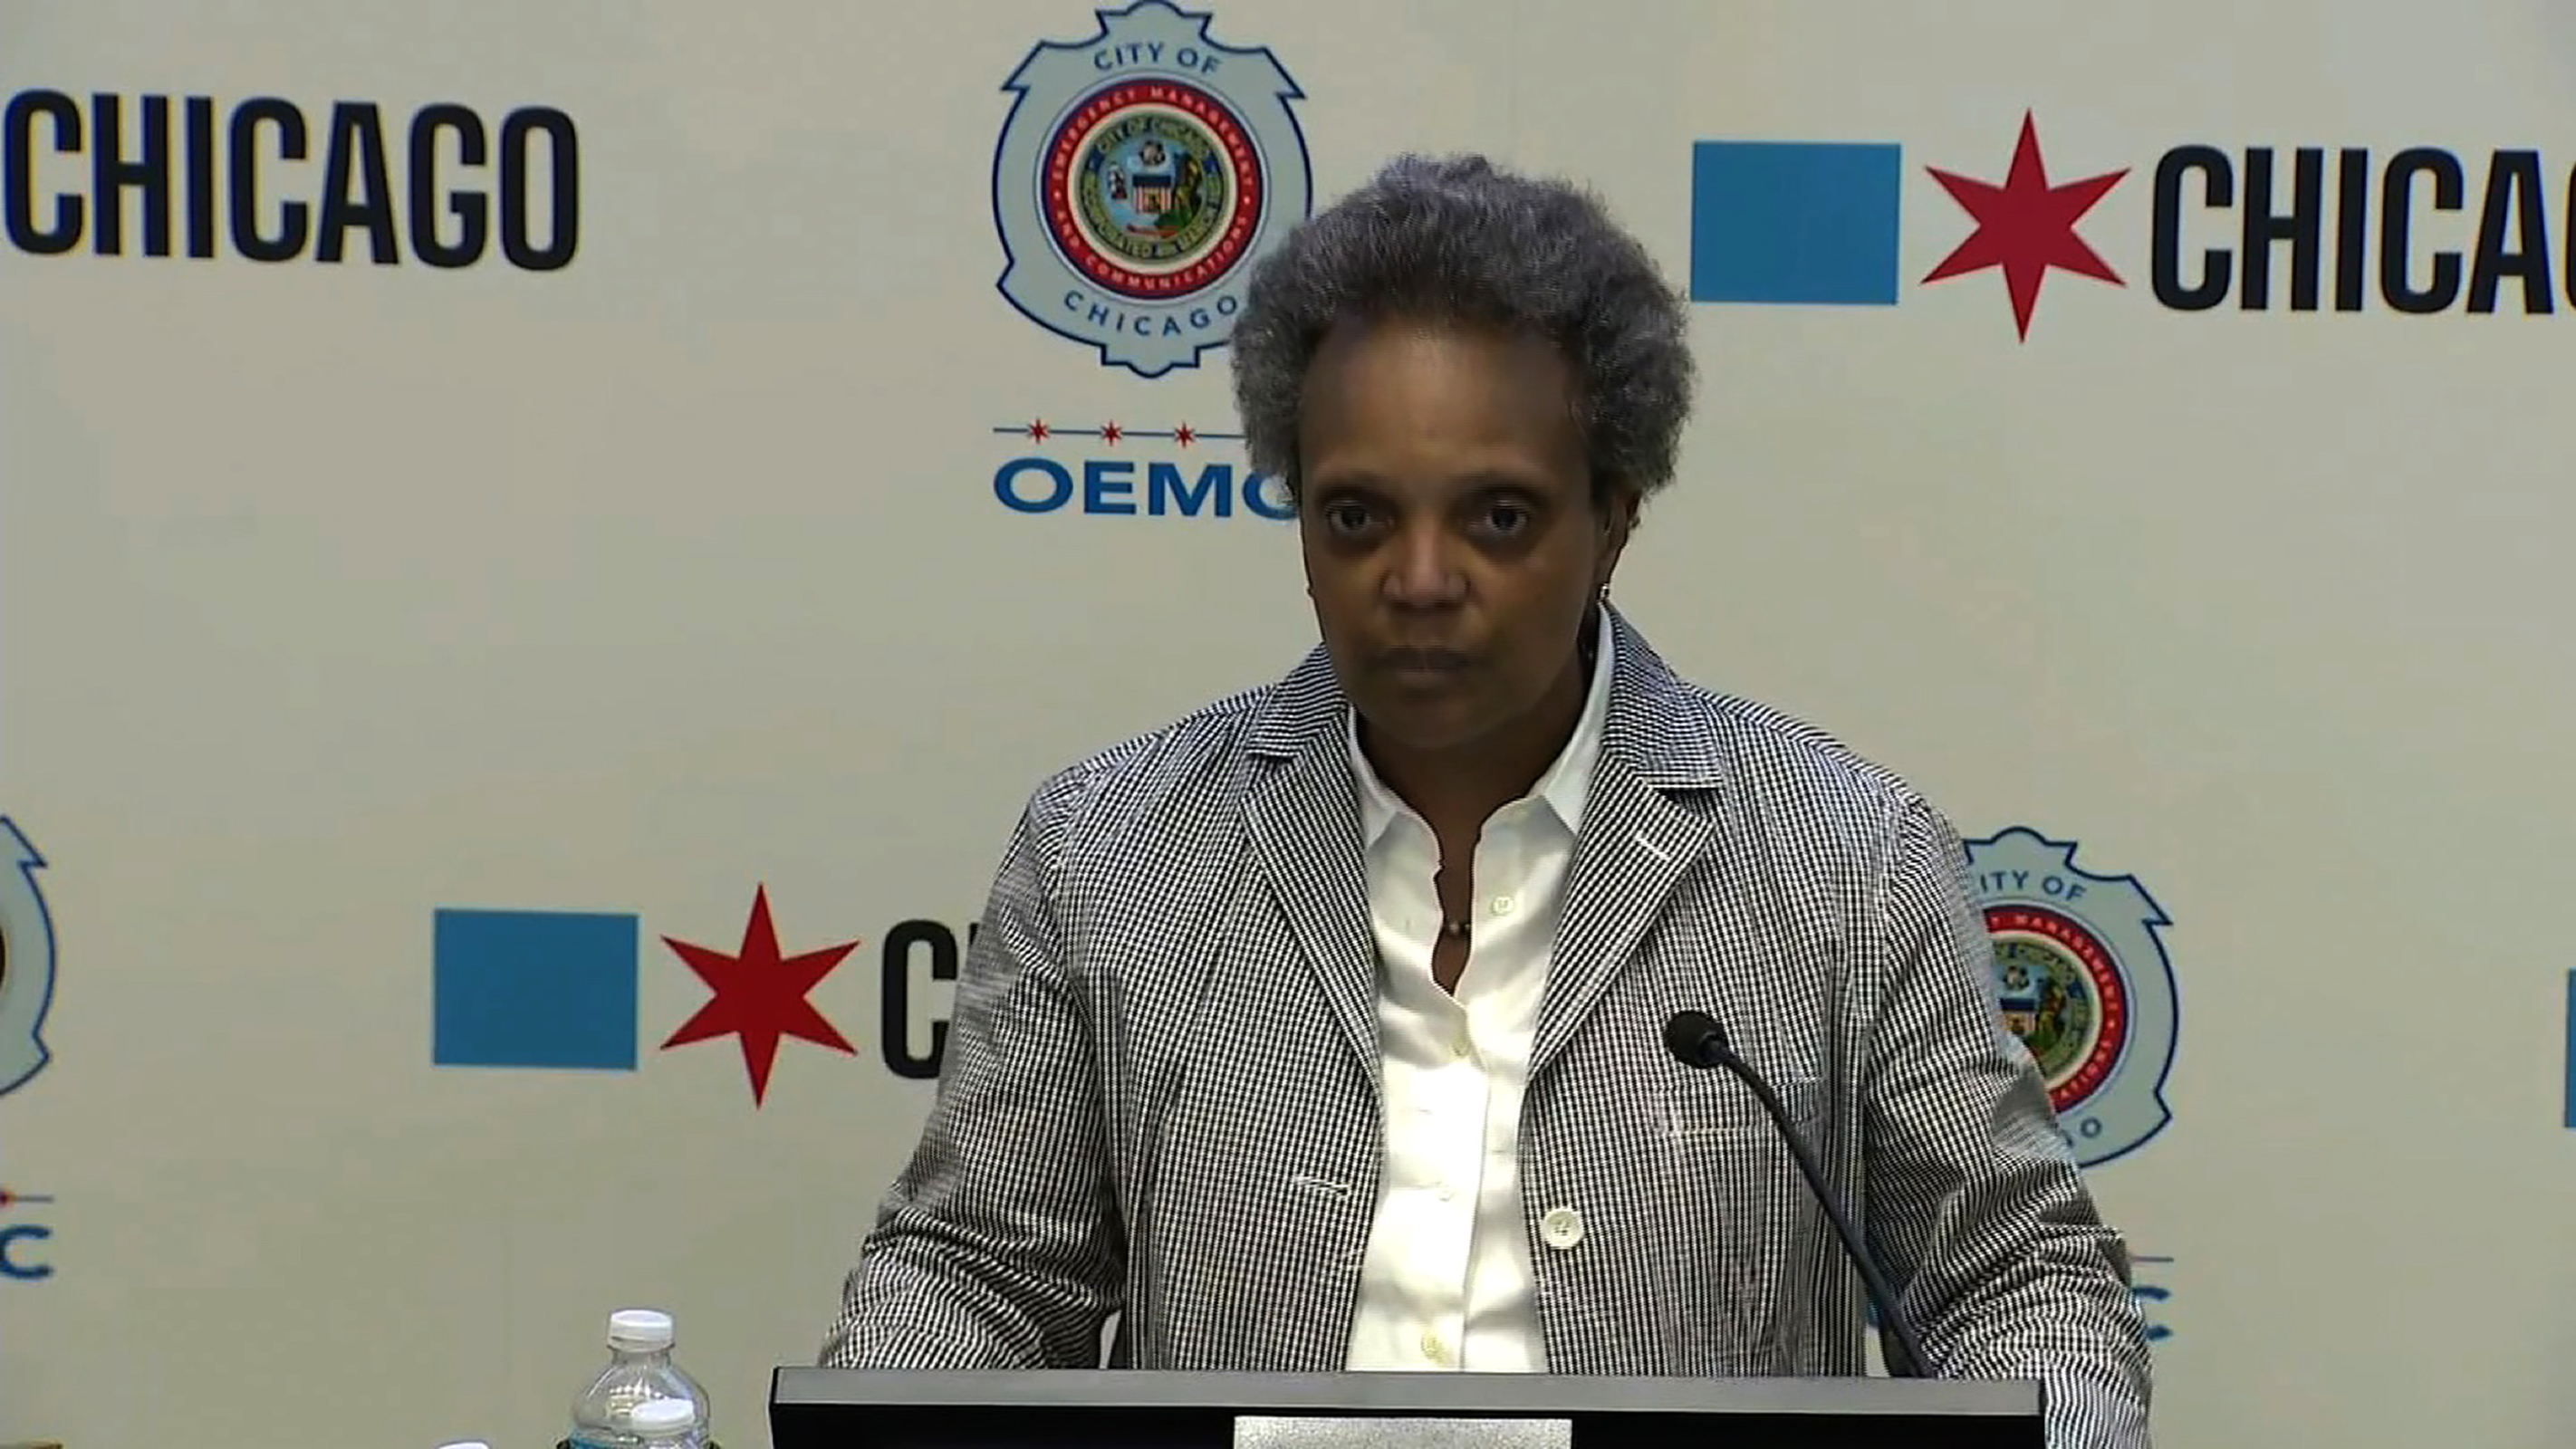 Chicago Mayor Lori Lightfoot speaks at a news conference in Chicago, on May 30.